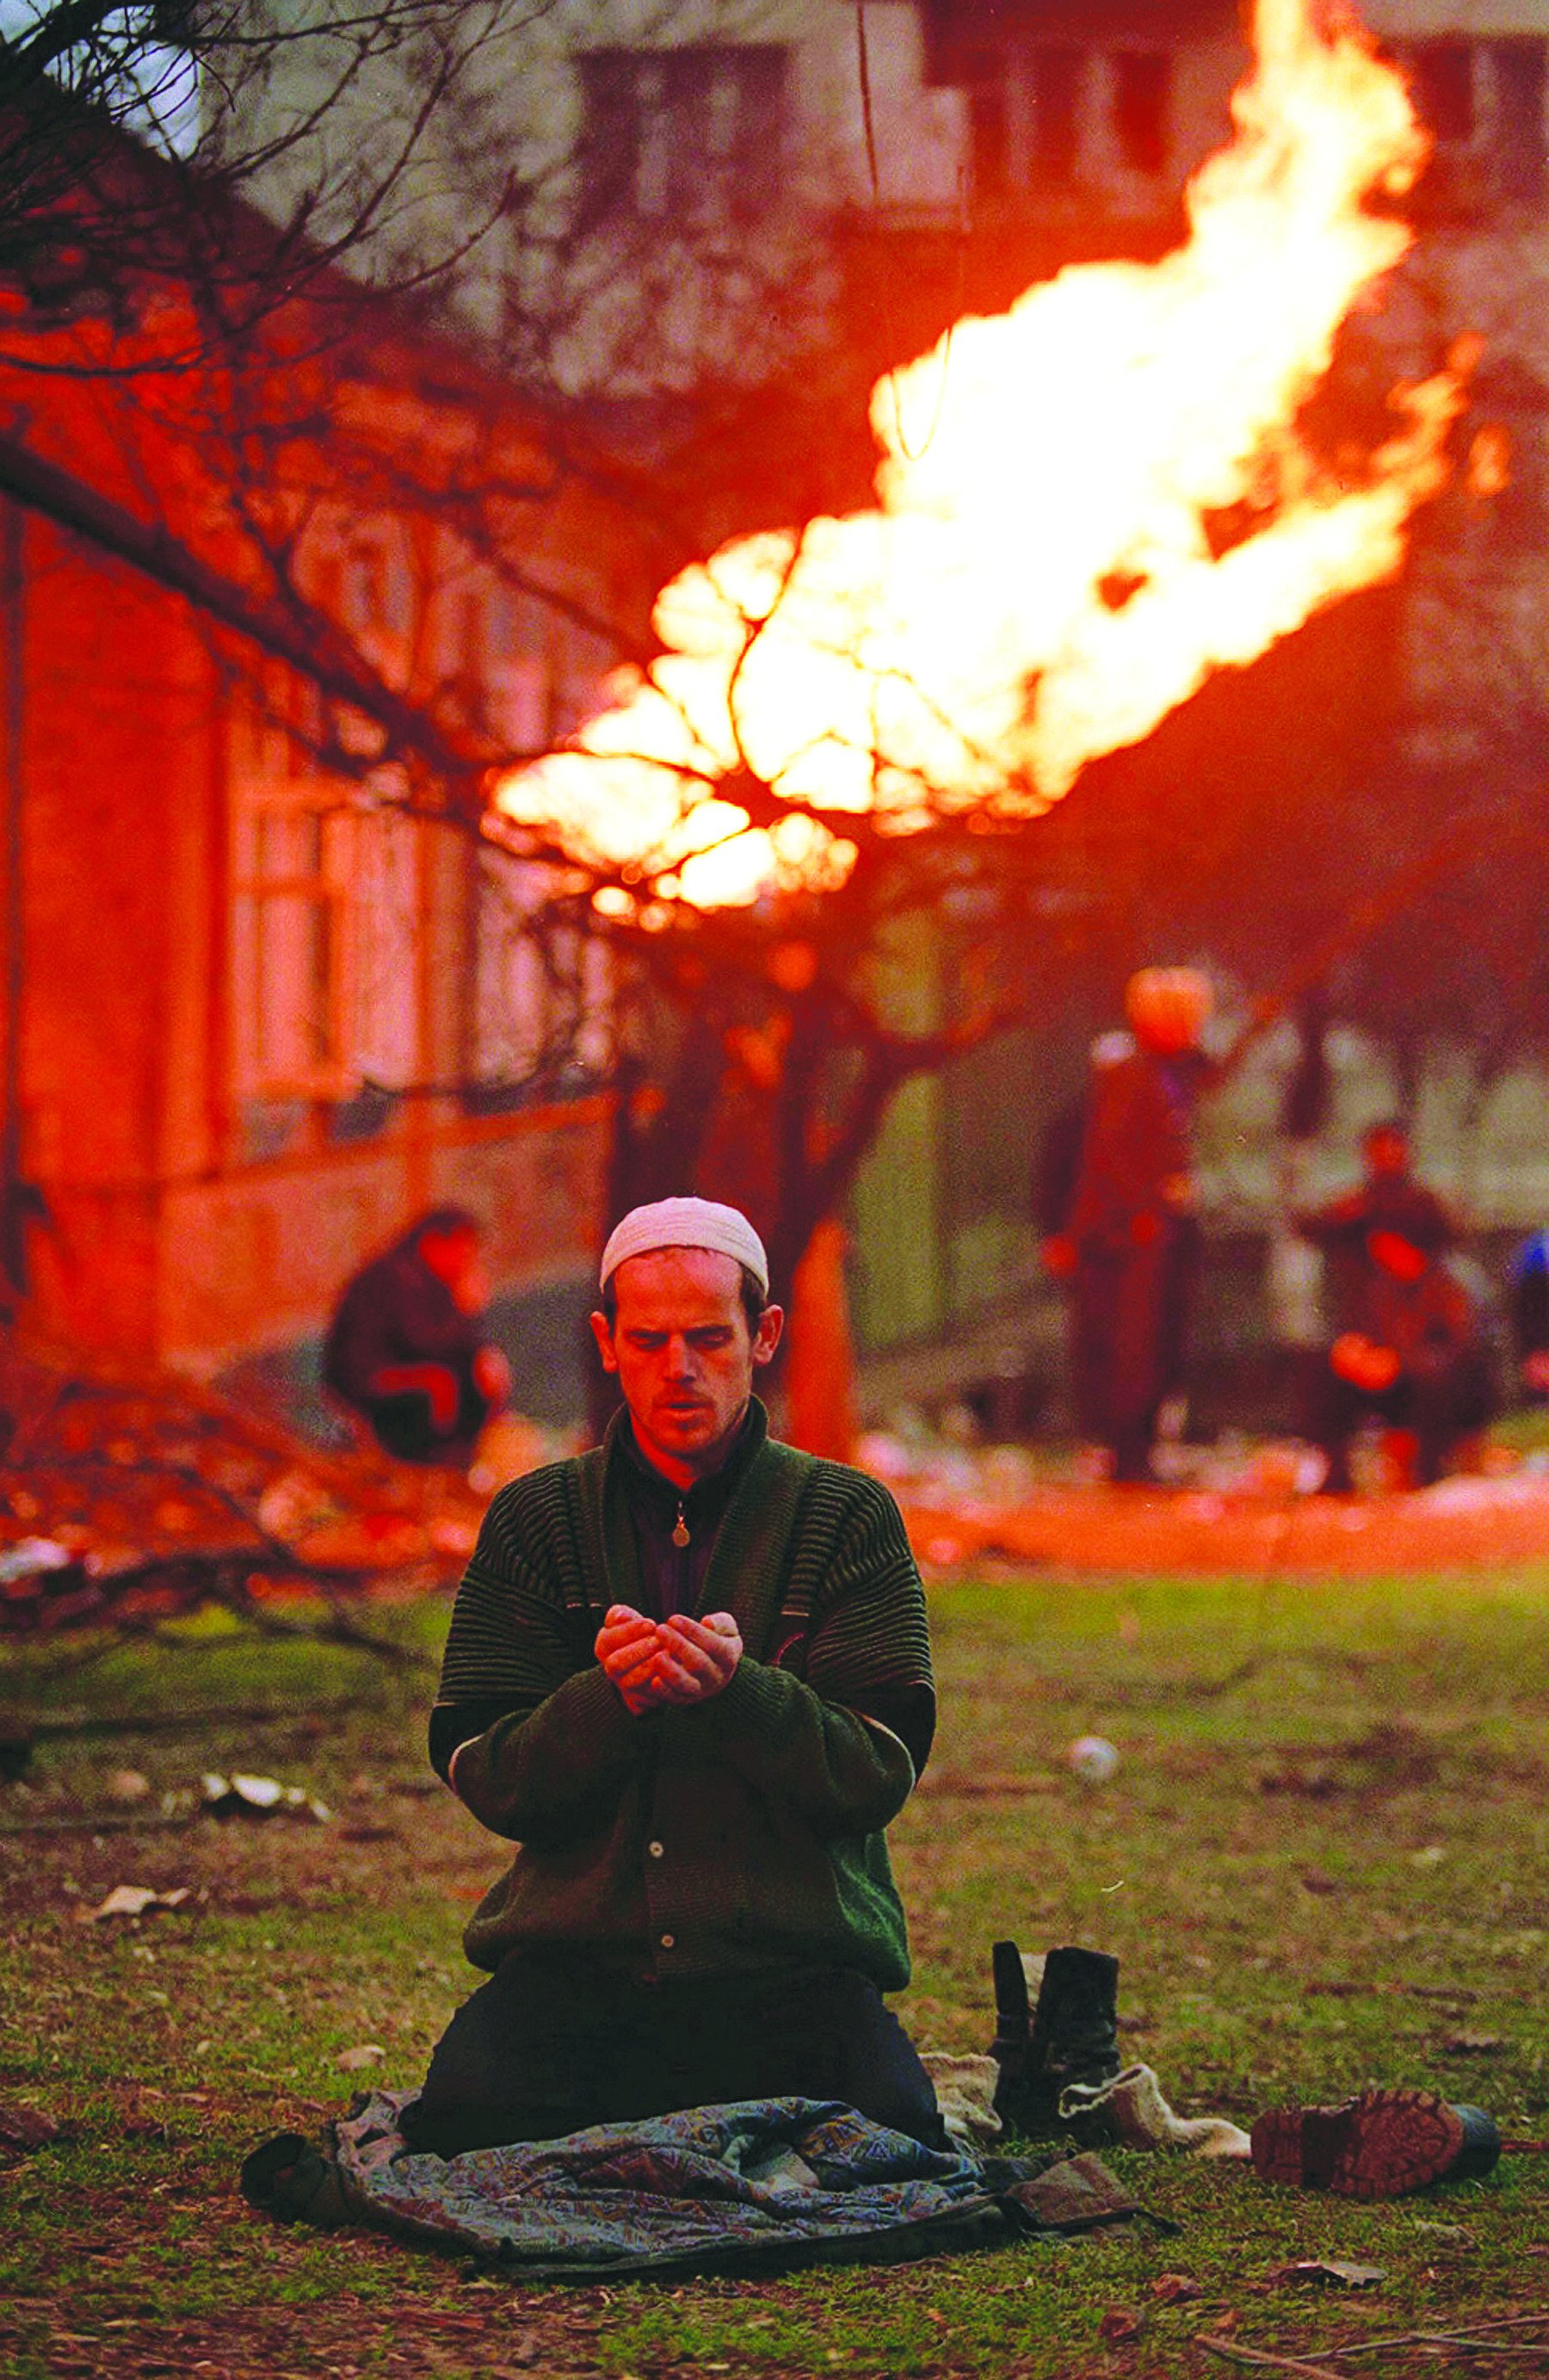 A Chechen man praying during the battle of Grozny in 1995, photo: Mikhail Evstafiev